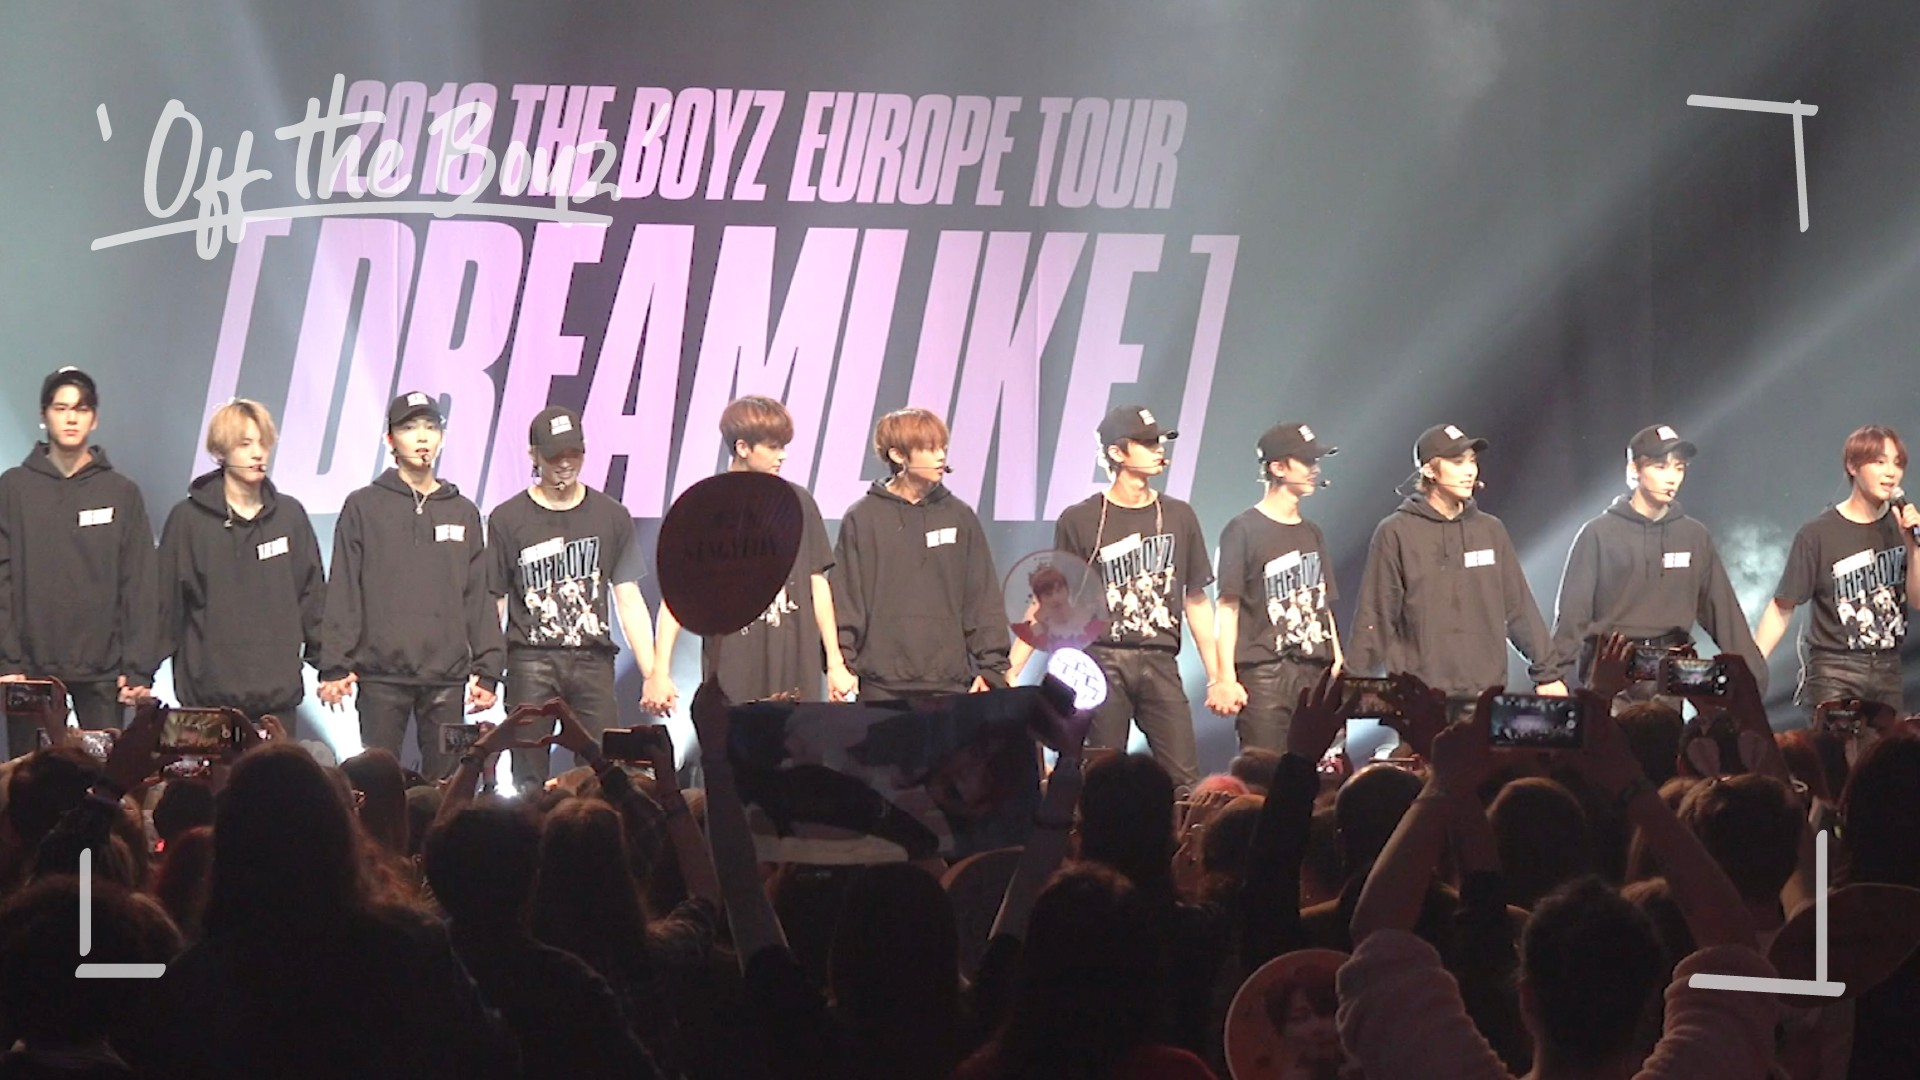 [OFF THE BOYZ] EUROPE TOUR IN PARIS Behind